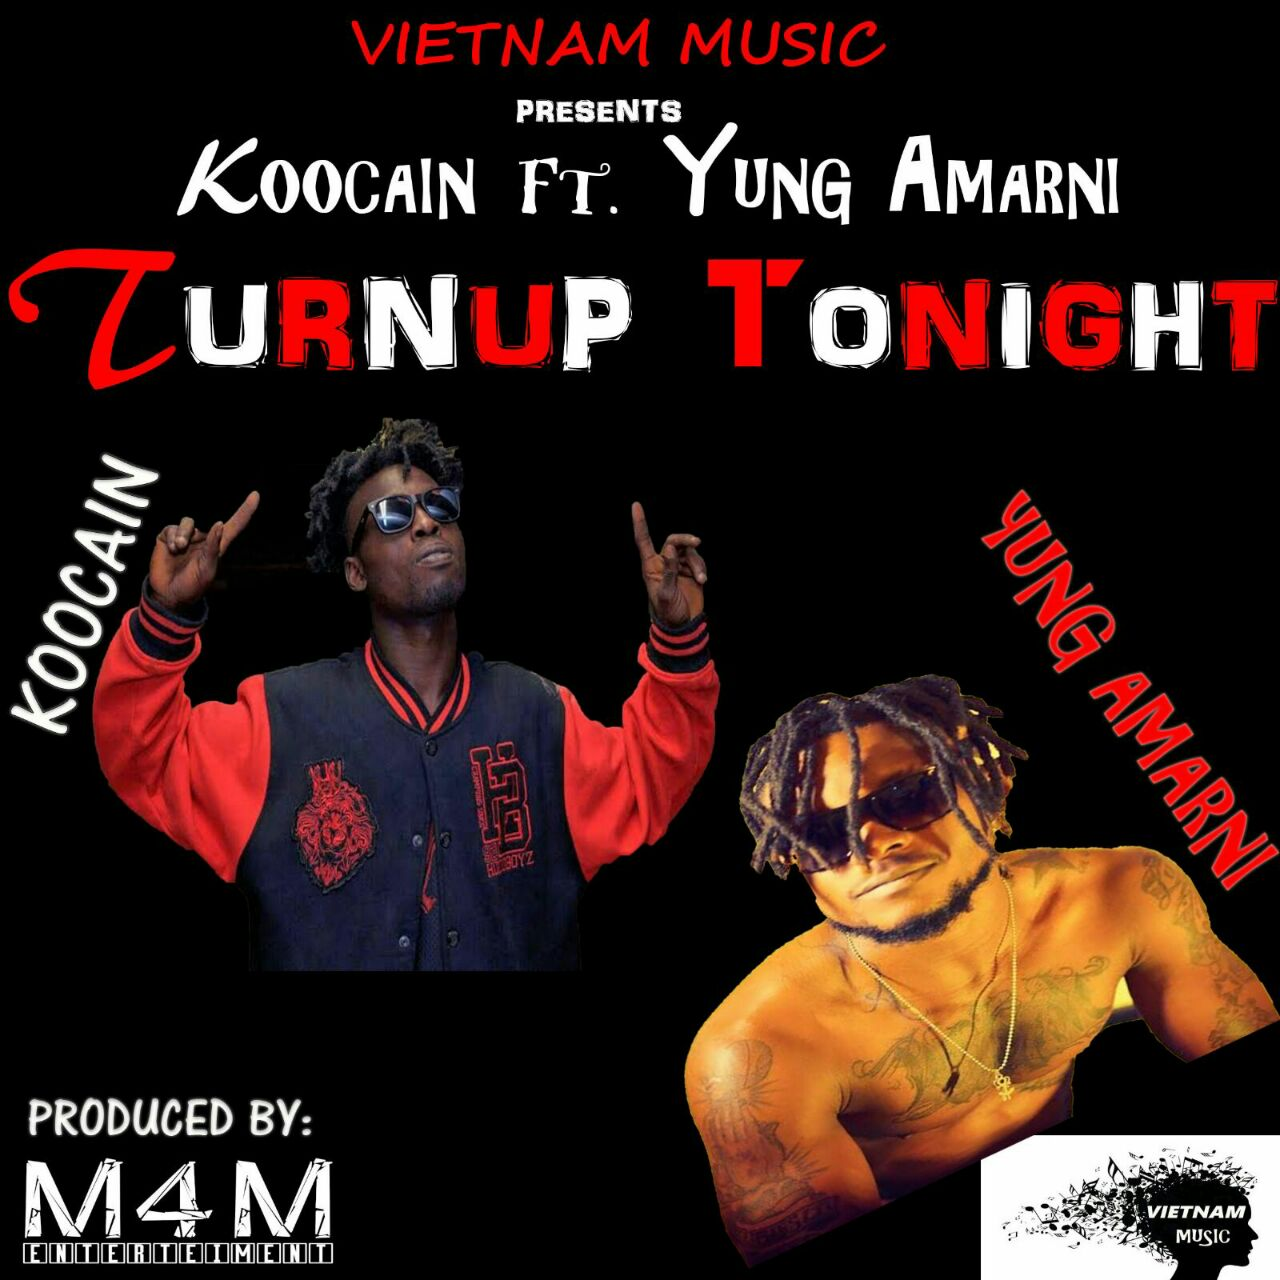 Koocain ft. Yung Amarni-(Turnup Tonight )prodby M4M